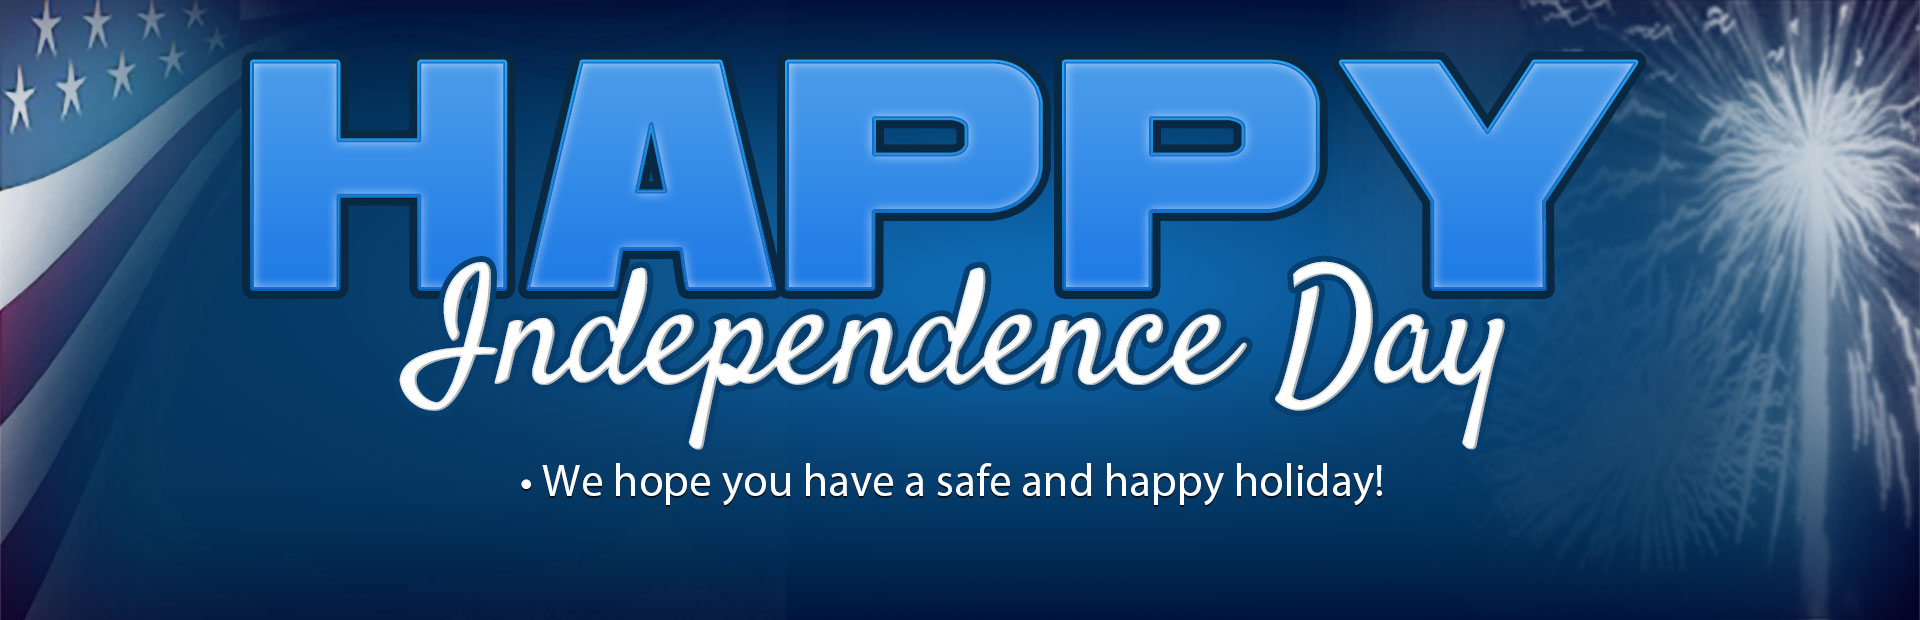 Happy Independence Day: We hope you have a safe and happy holiday!